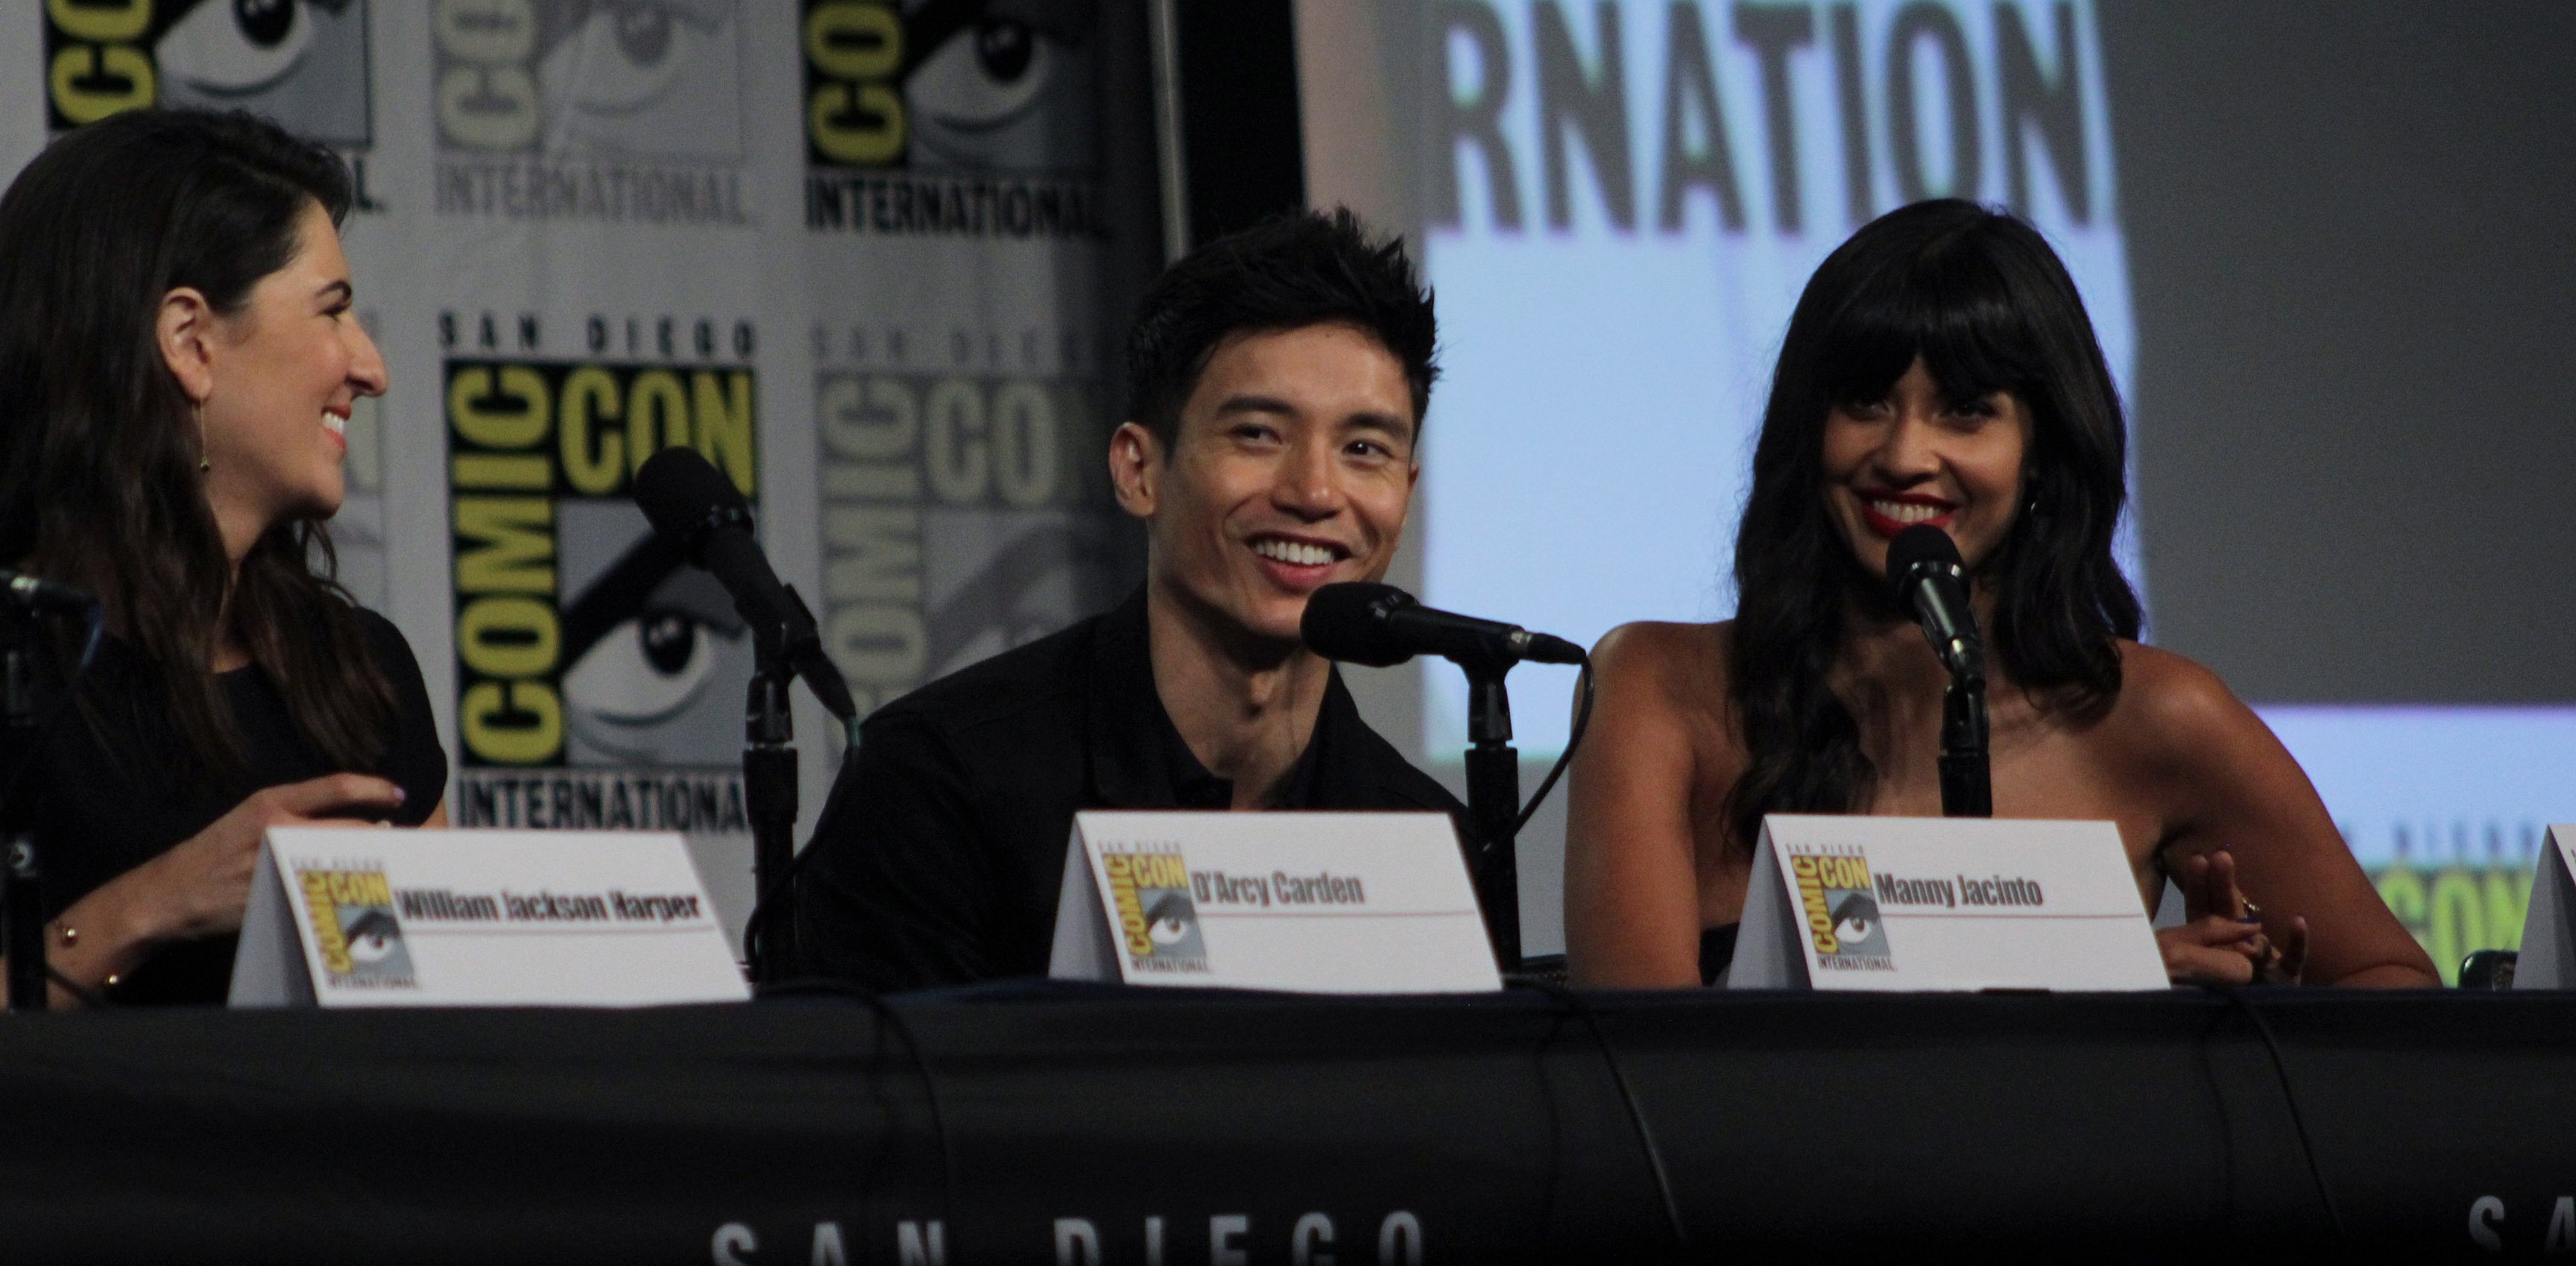 Image Source: Wikimedia Commons|Cast and crew of NBC's 'The Good Place' discuss the show in the Indigo Ballroom at the San Diego Hilton Bayfront Hotel during San Diego Comic Con on July 21, 2018